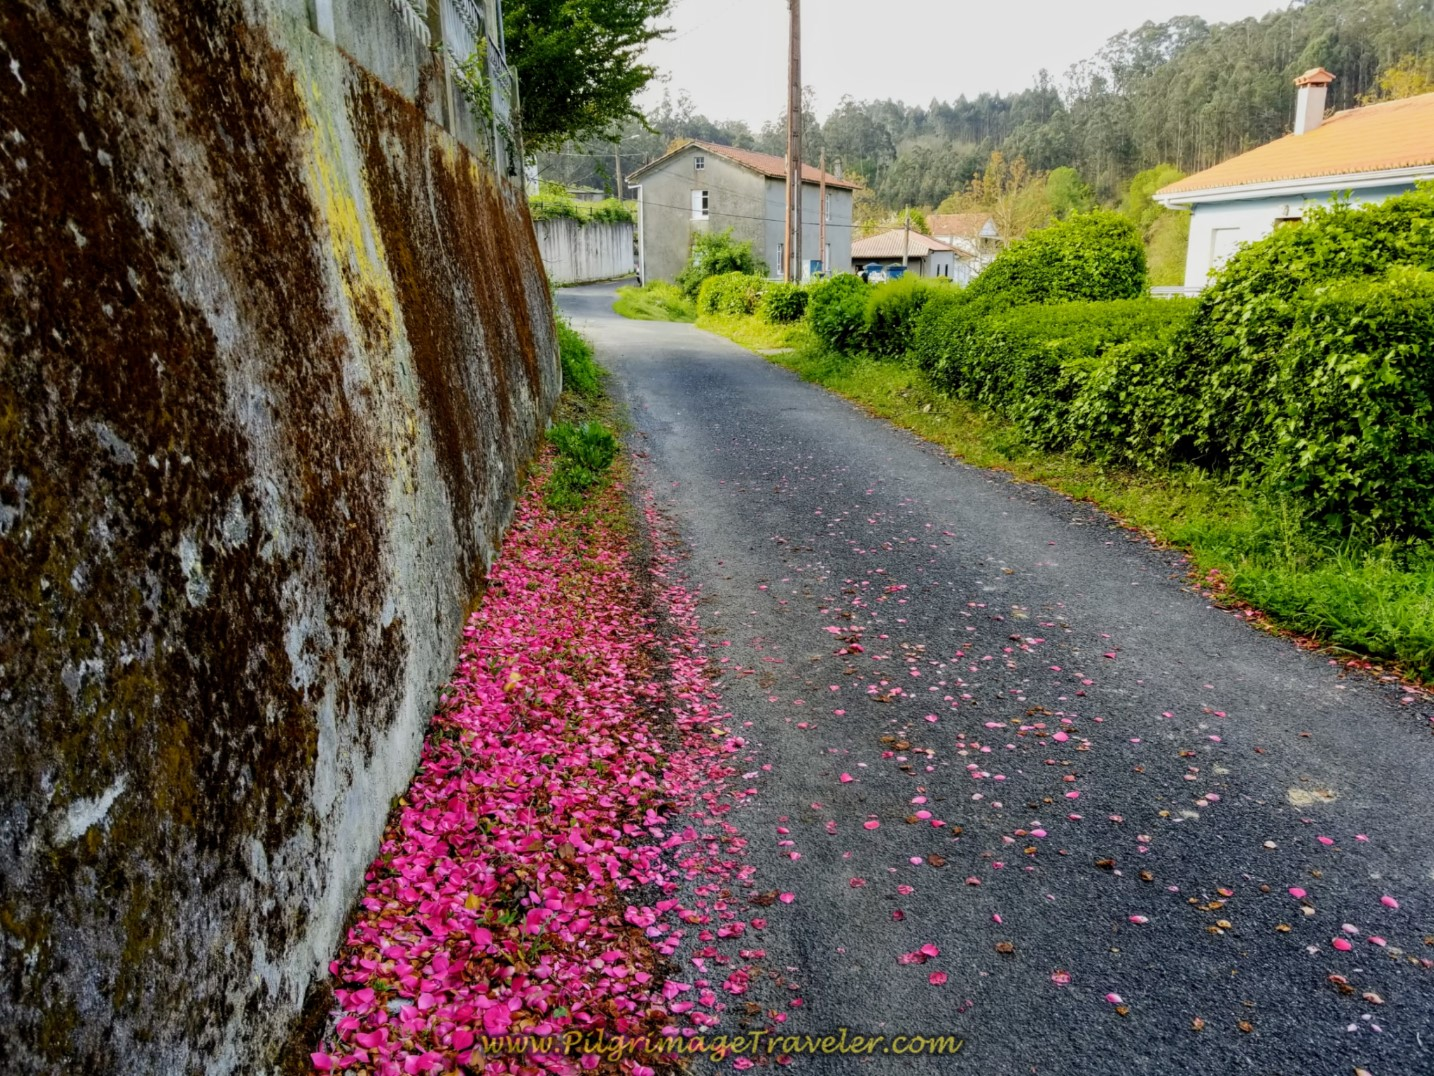 Camellia Petals Line the Road on day four of the Camino Inglés